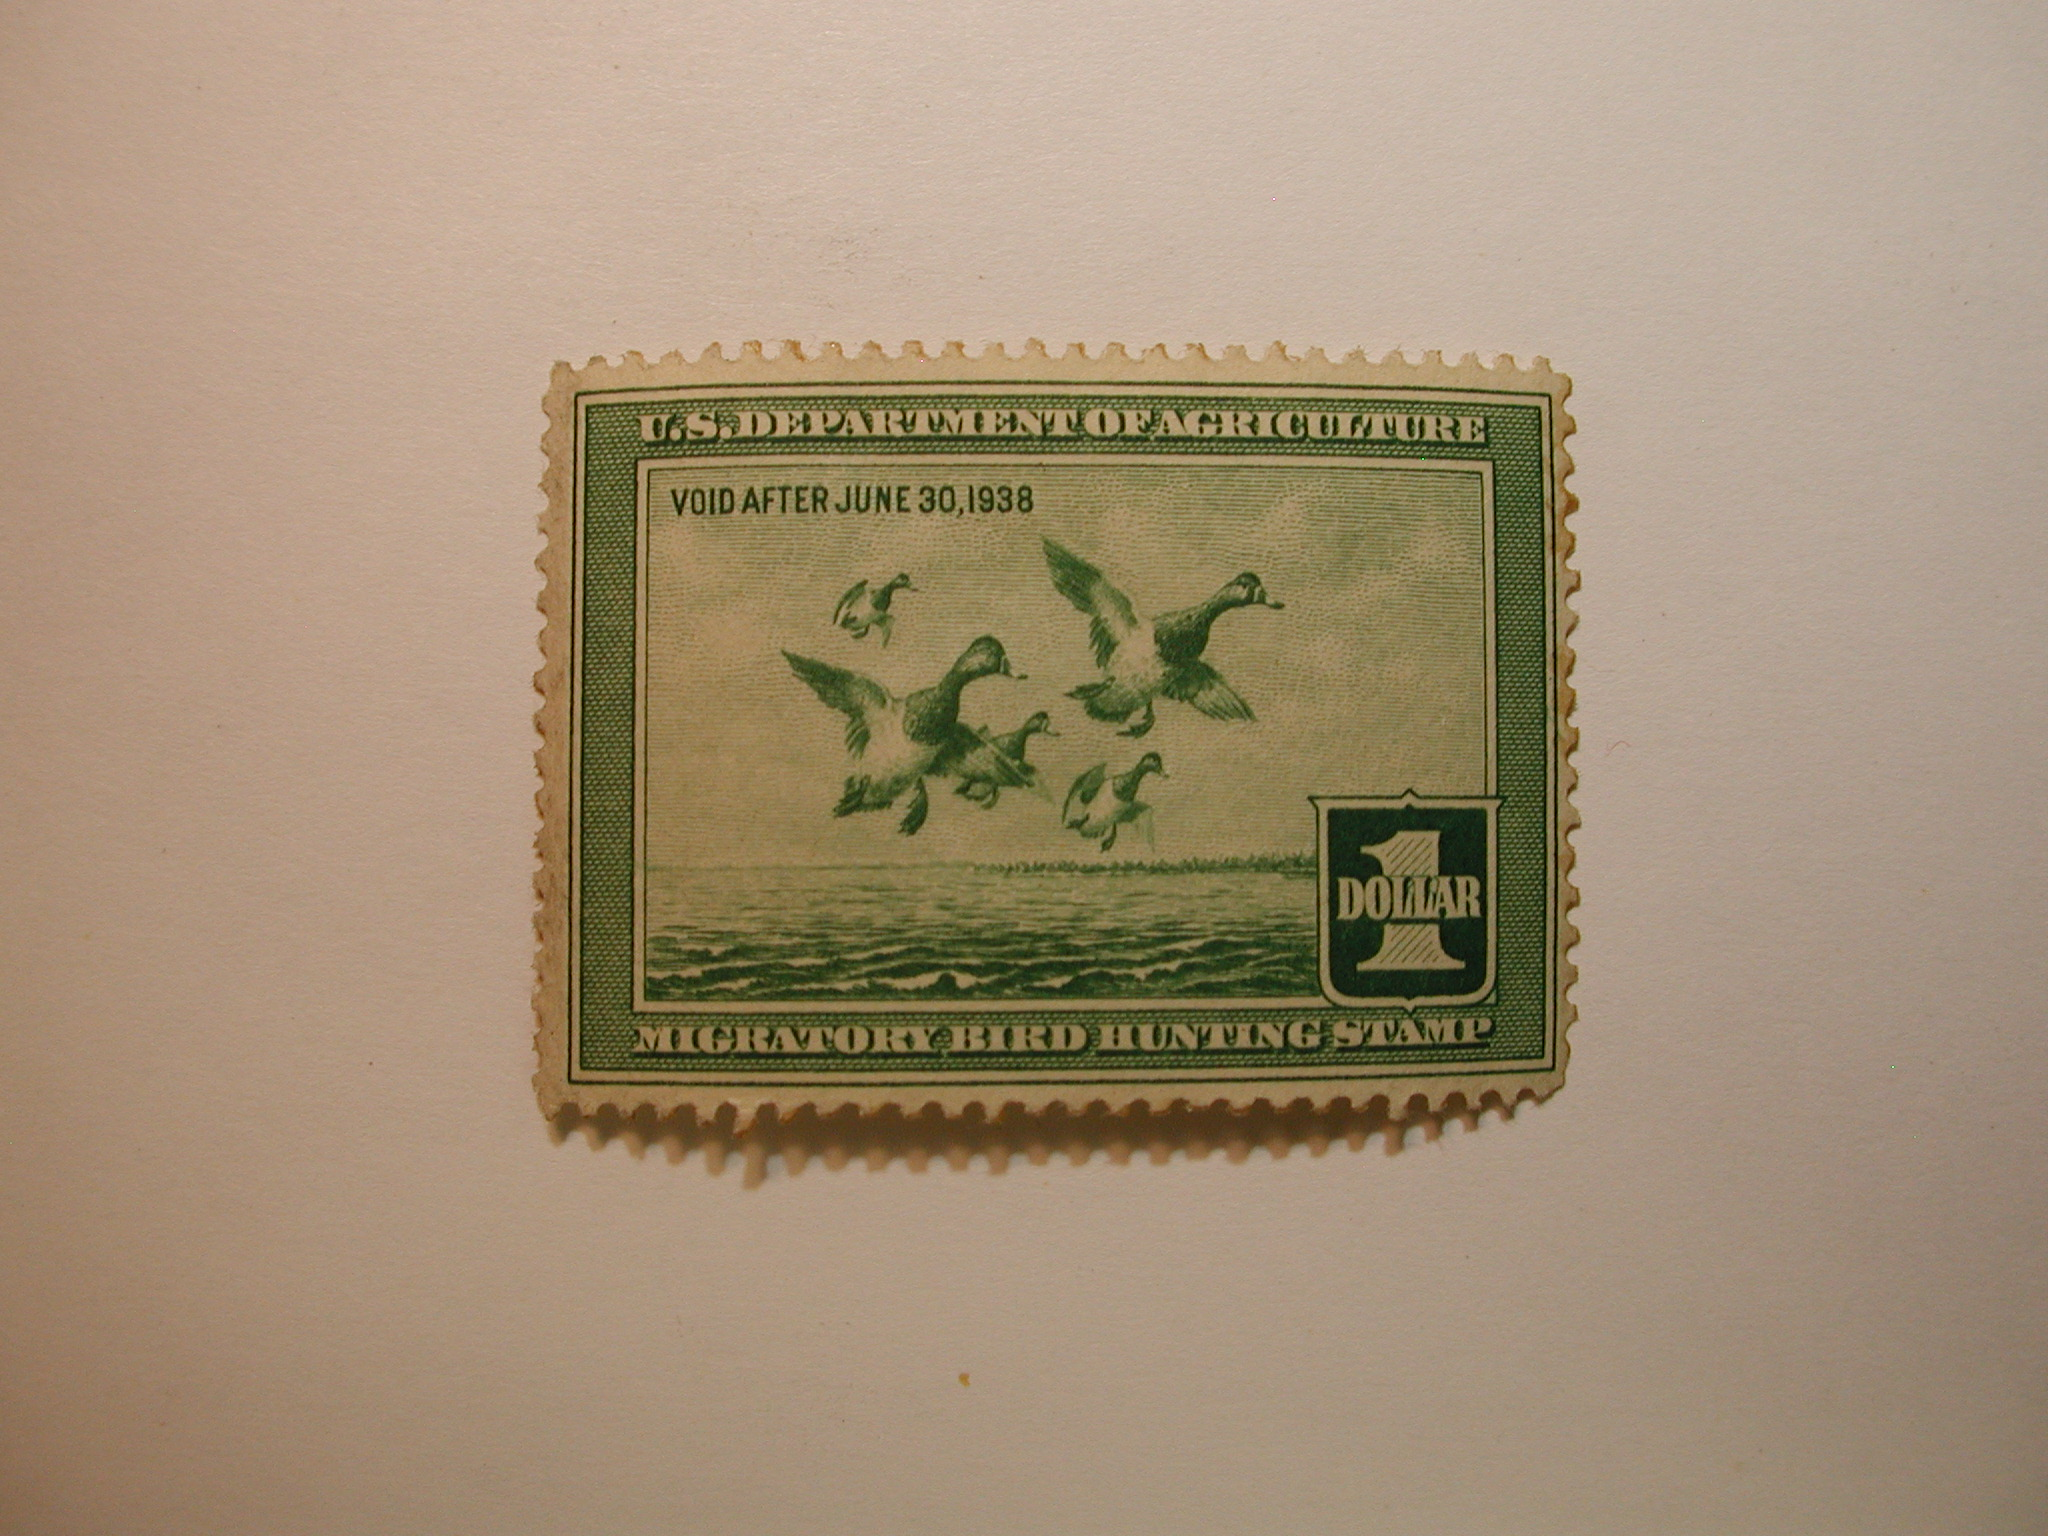 Brown agricultural stamp photo